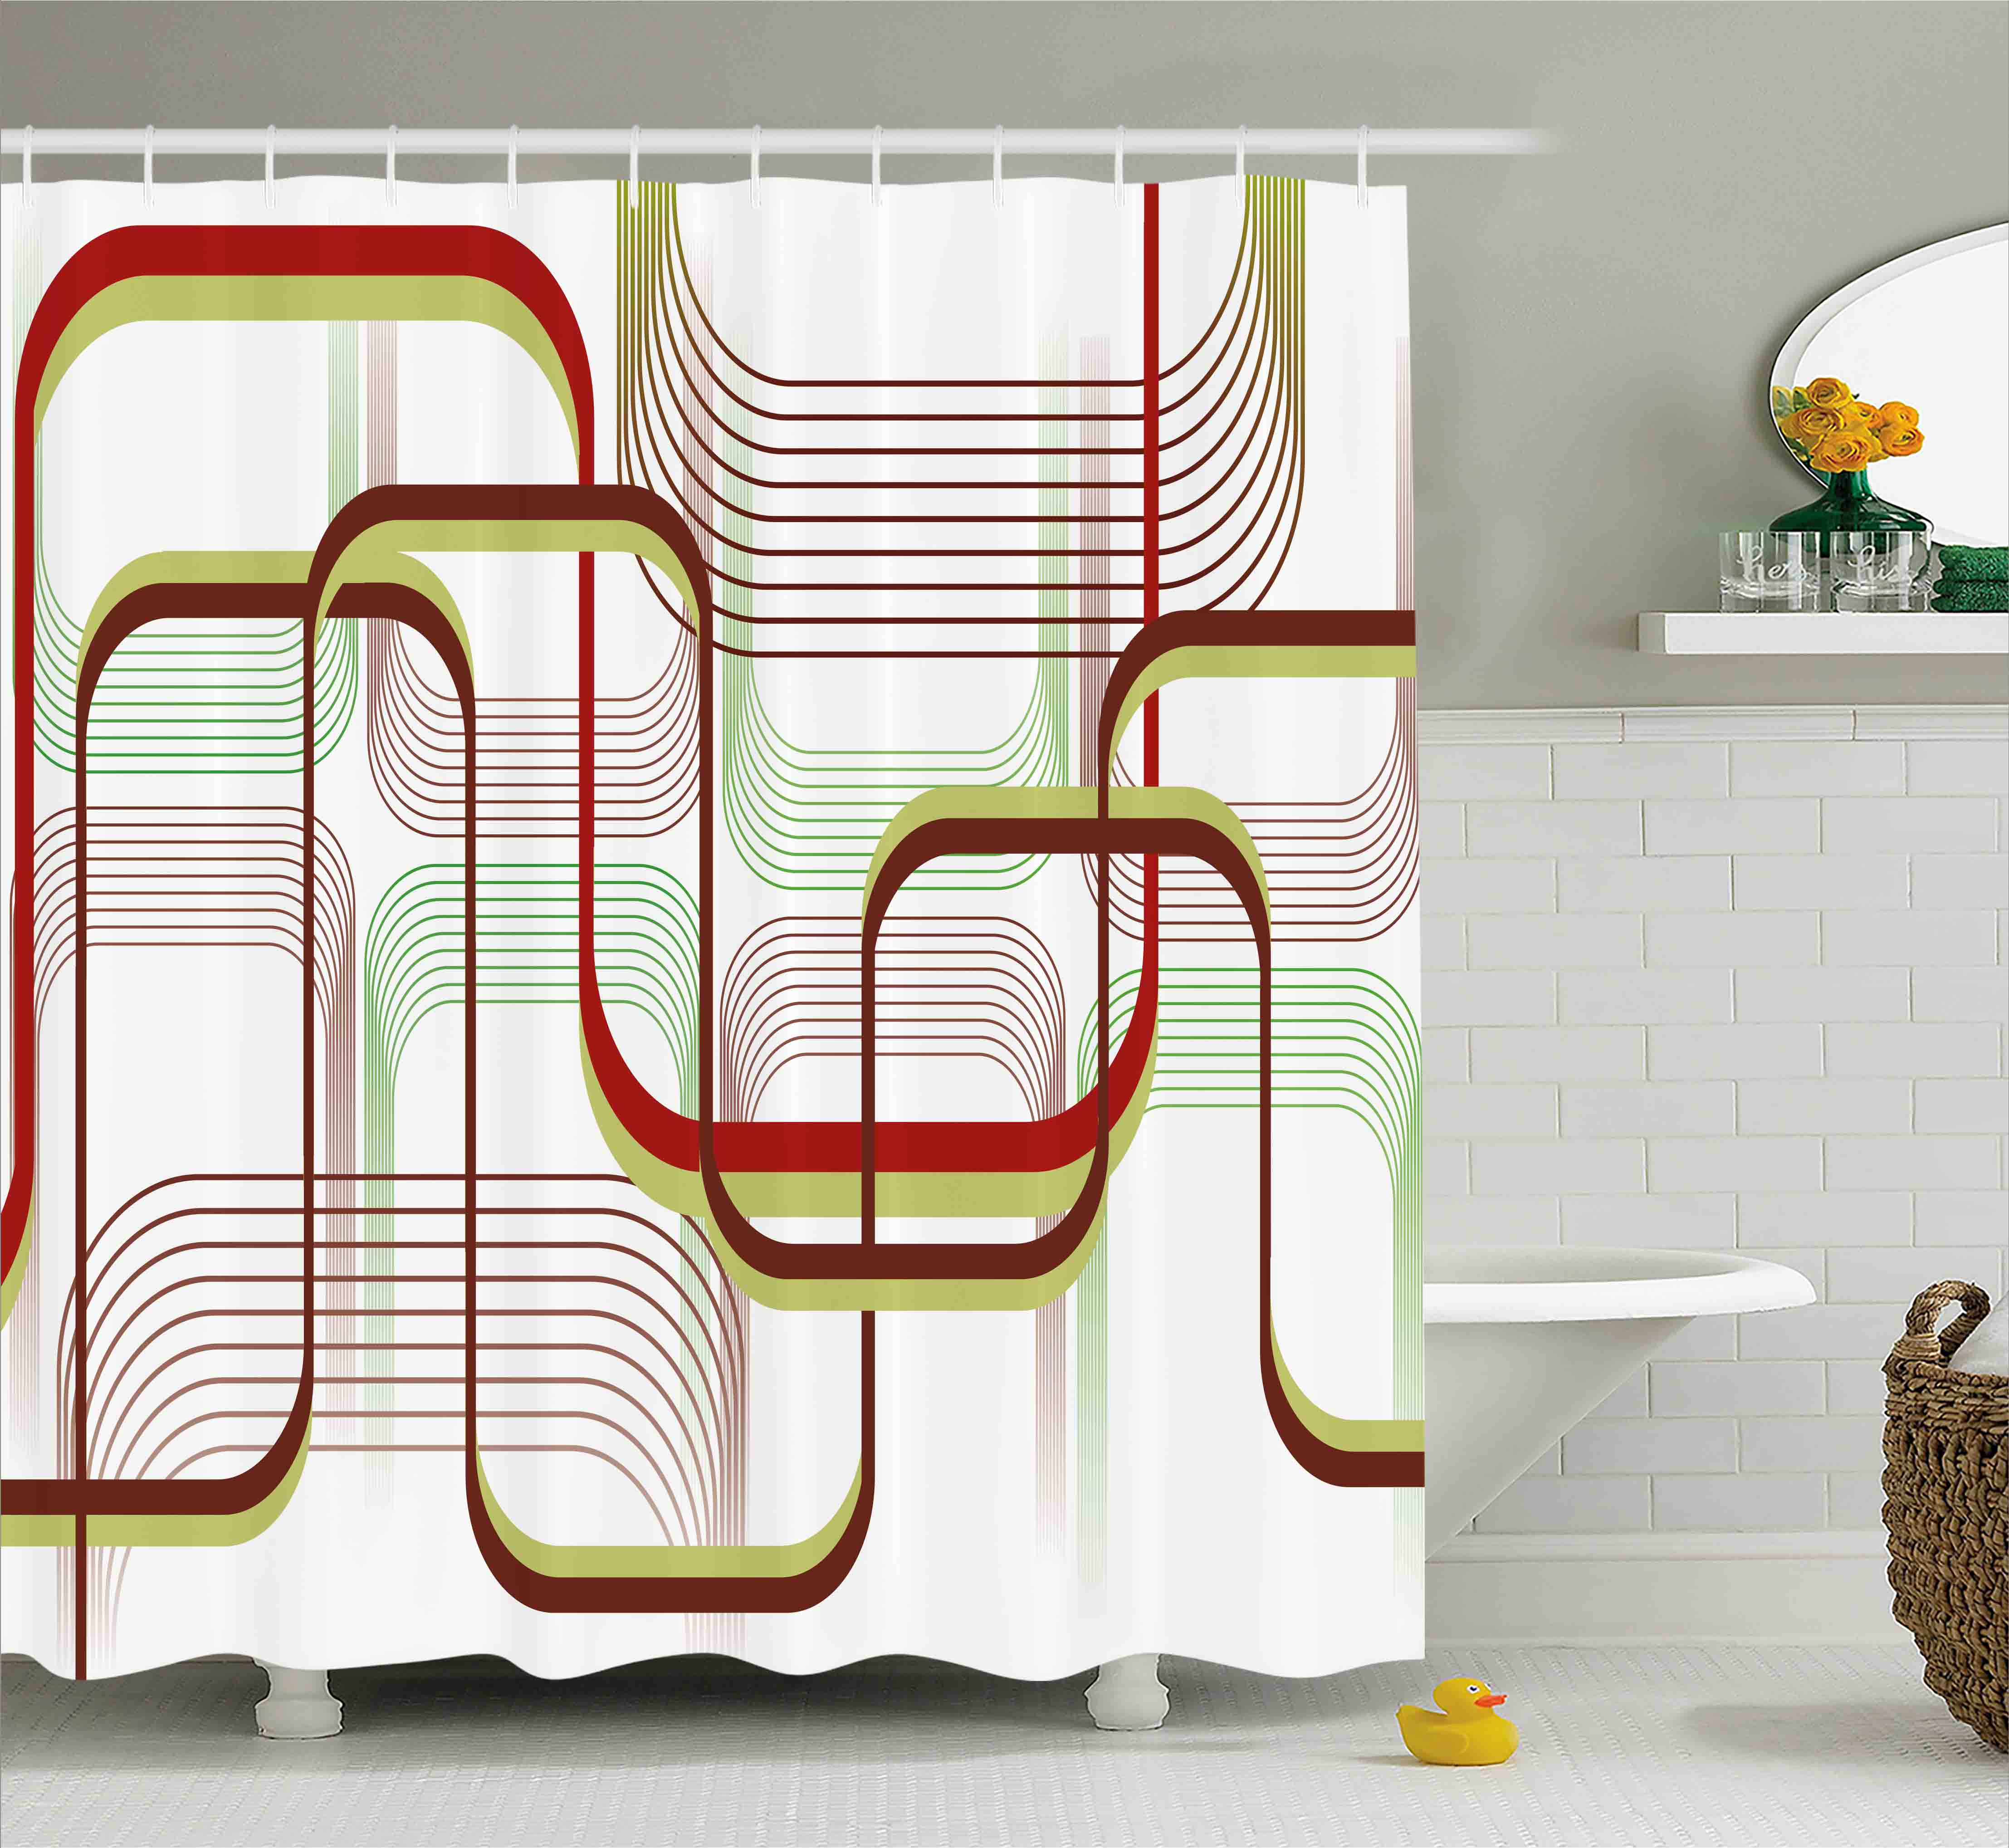 Modern Shower Curtain Geometric Contemporary Wavy Lines With Abstract Shapes Designs Art Image Fabric Bathroom Set With Hooks Khaki Burgundy White By Ambesonne Walmart Com Walmart Com